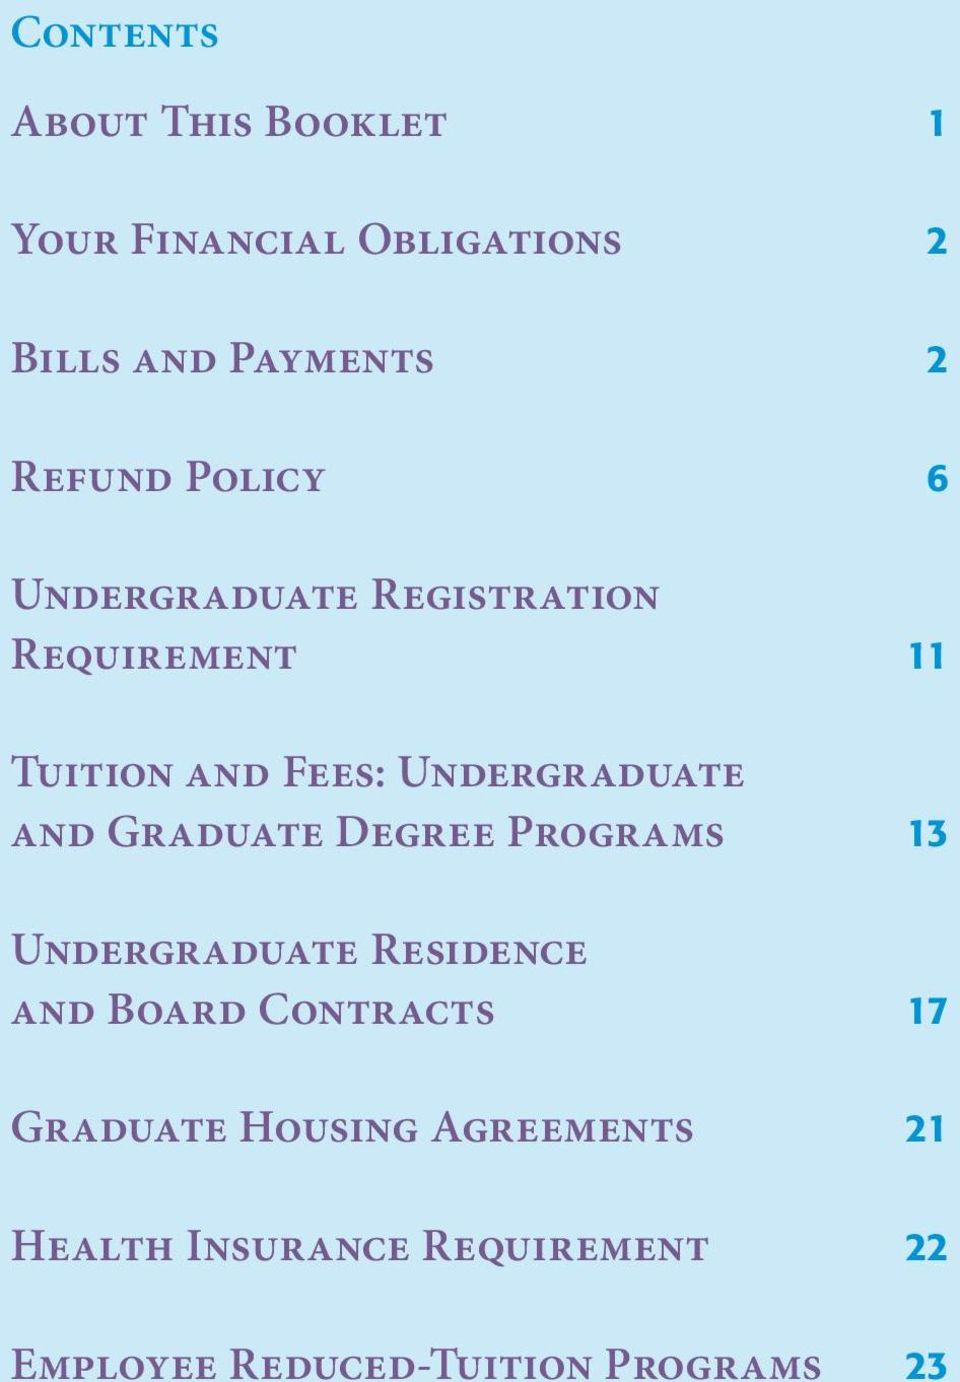 Graduate Degree Programs 13 Undergraduate Residence and Board Contracts 17 Graduate